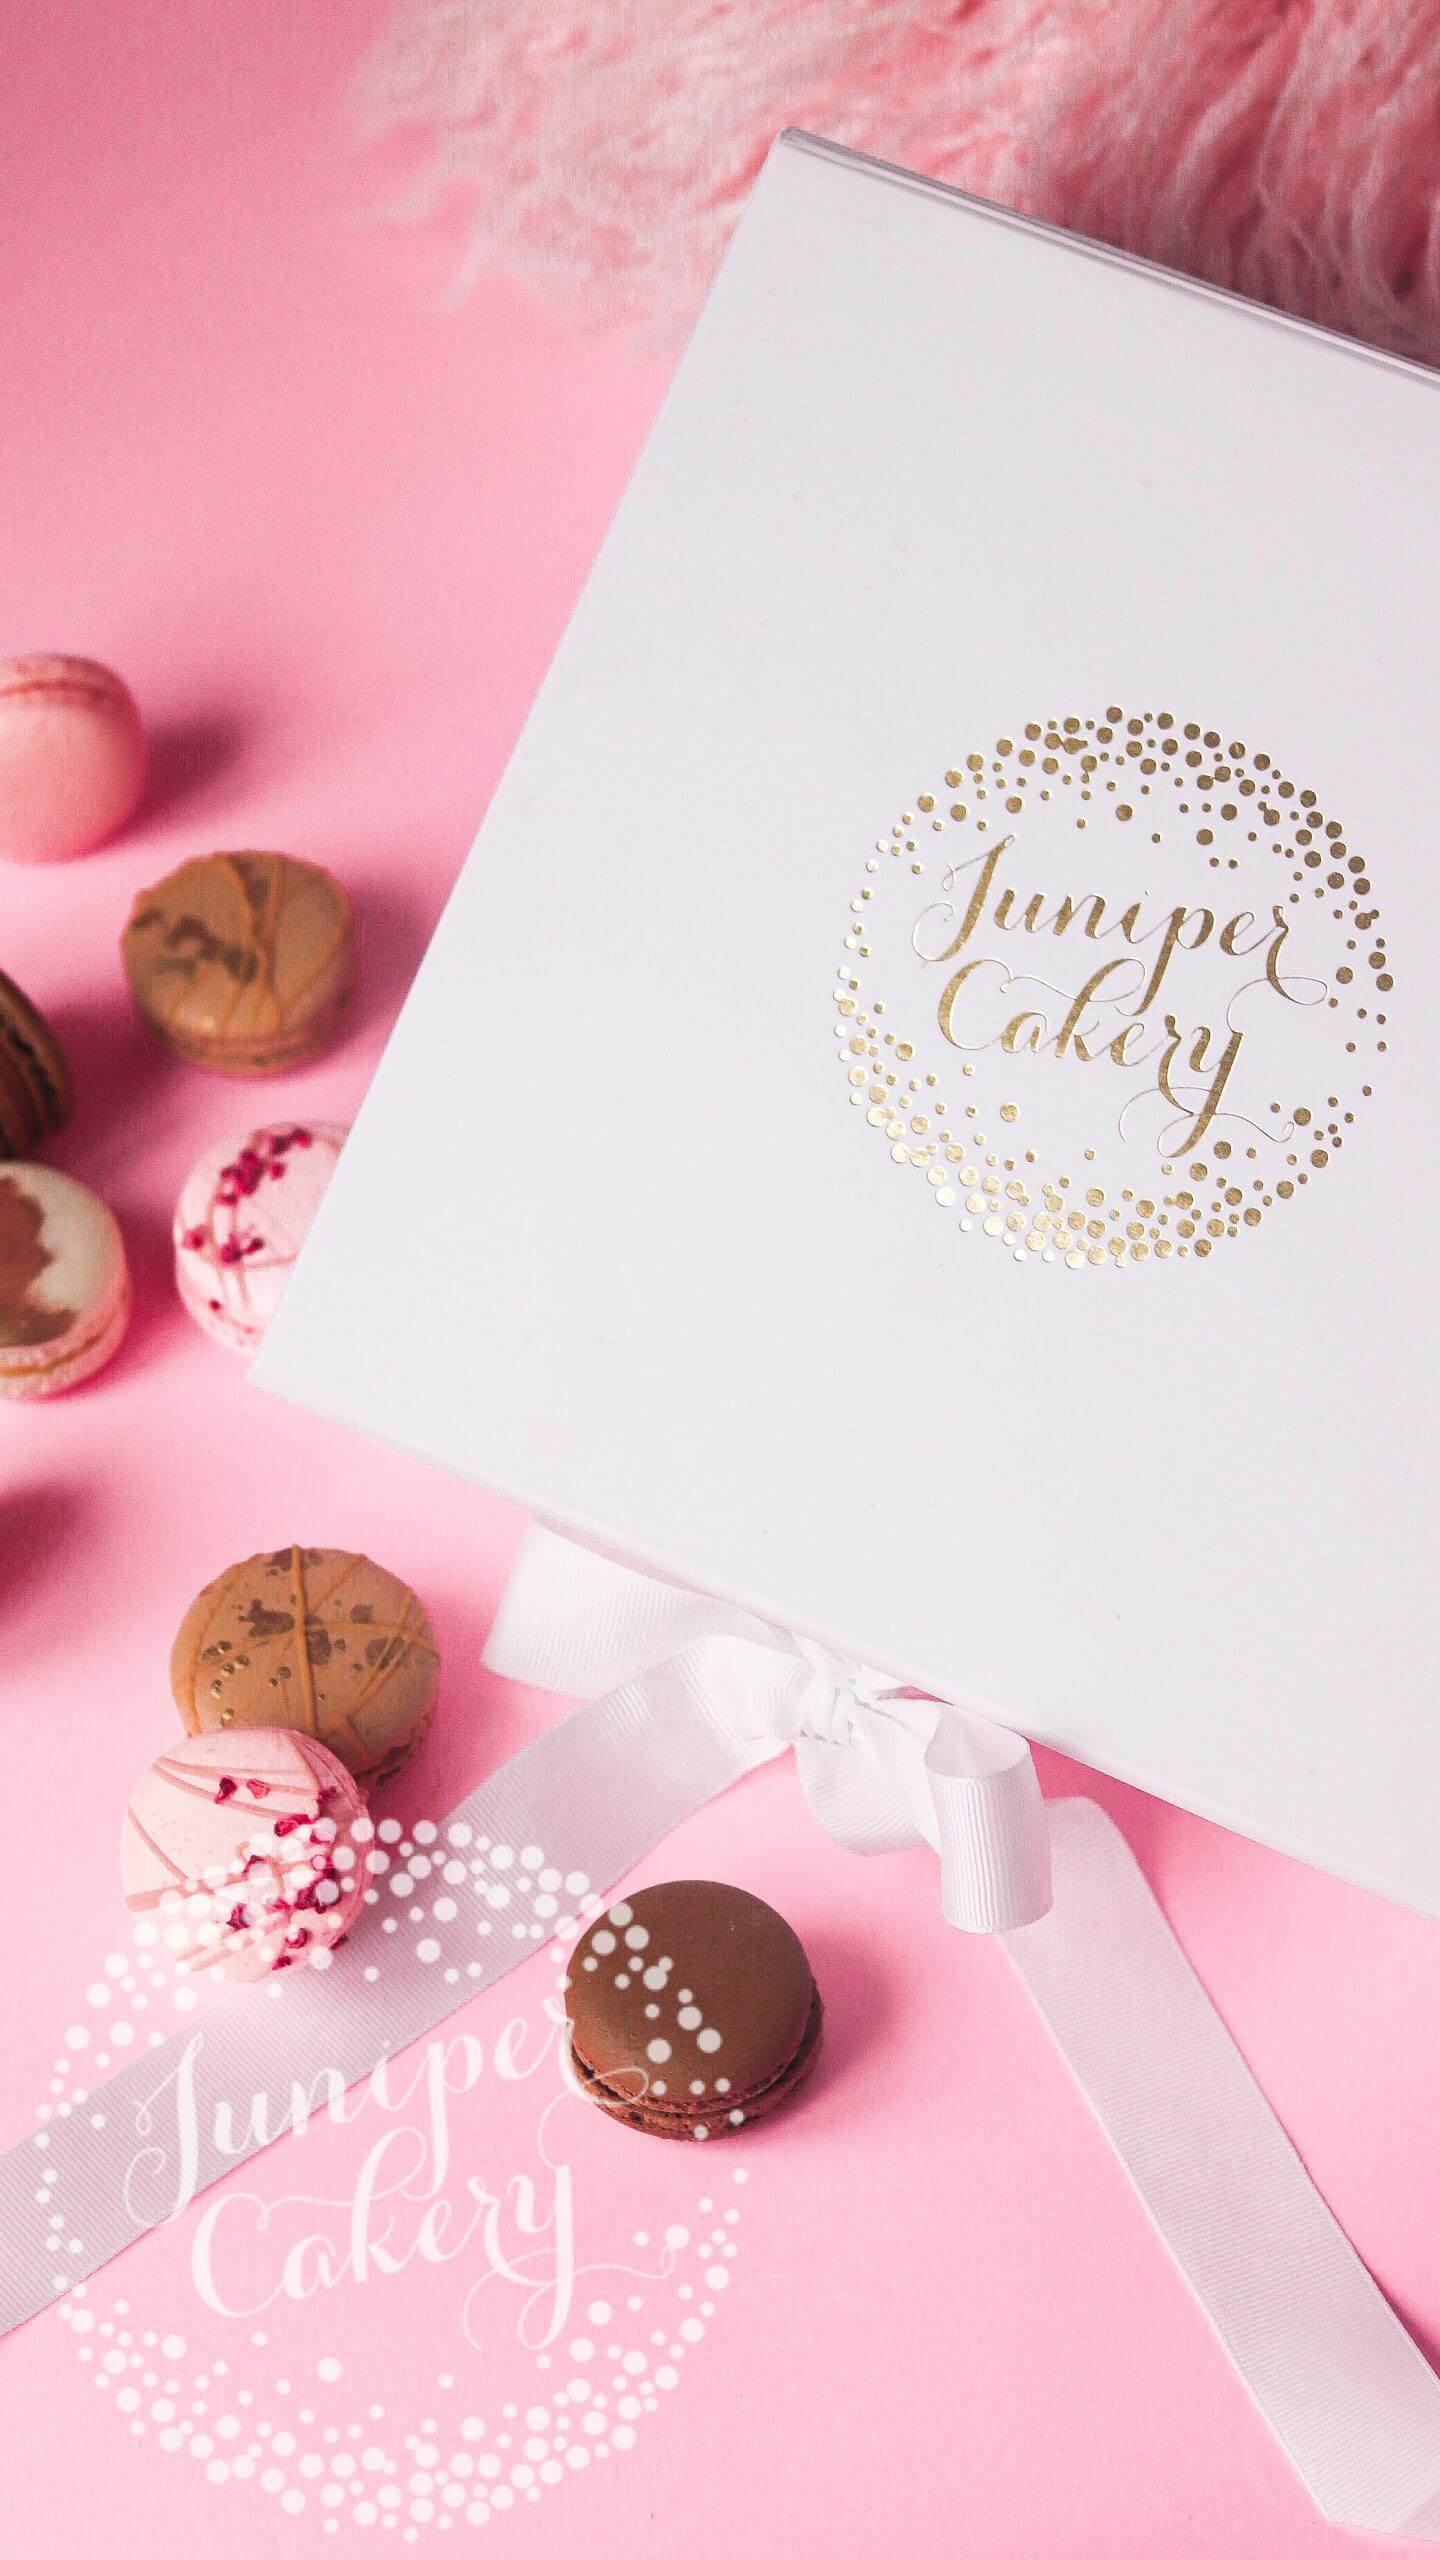 Macarons for UK delivery by Juniper Cakery